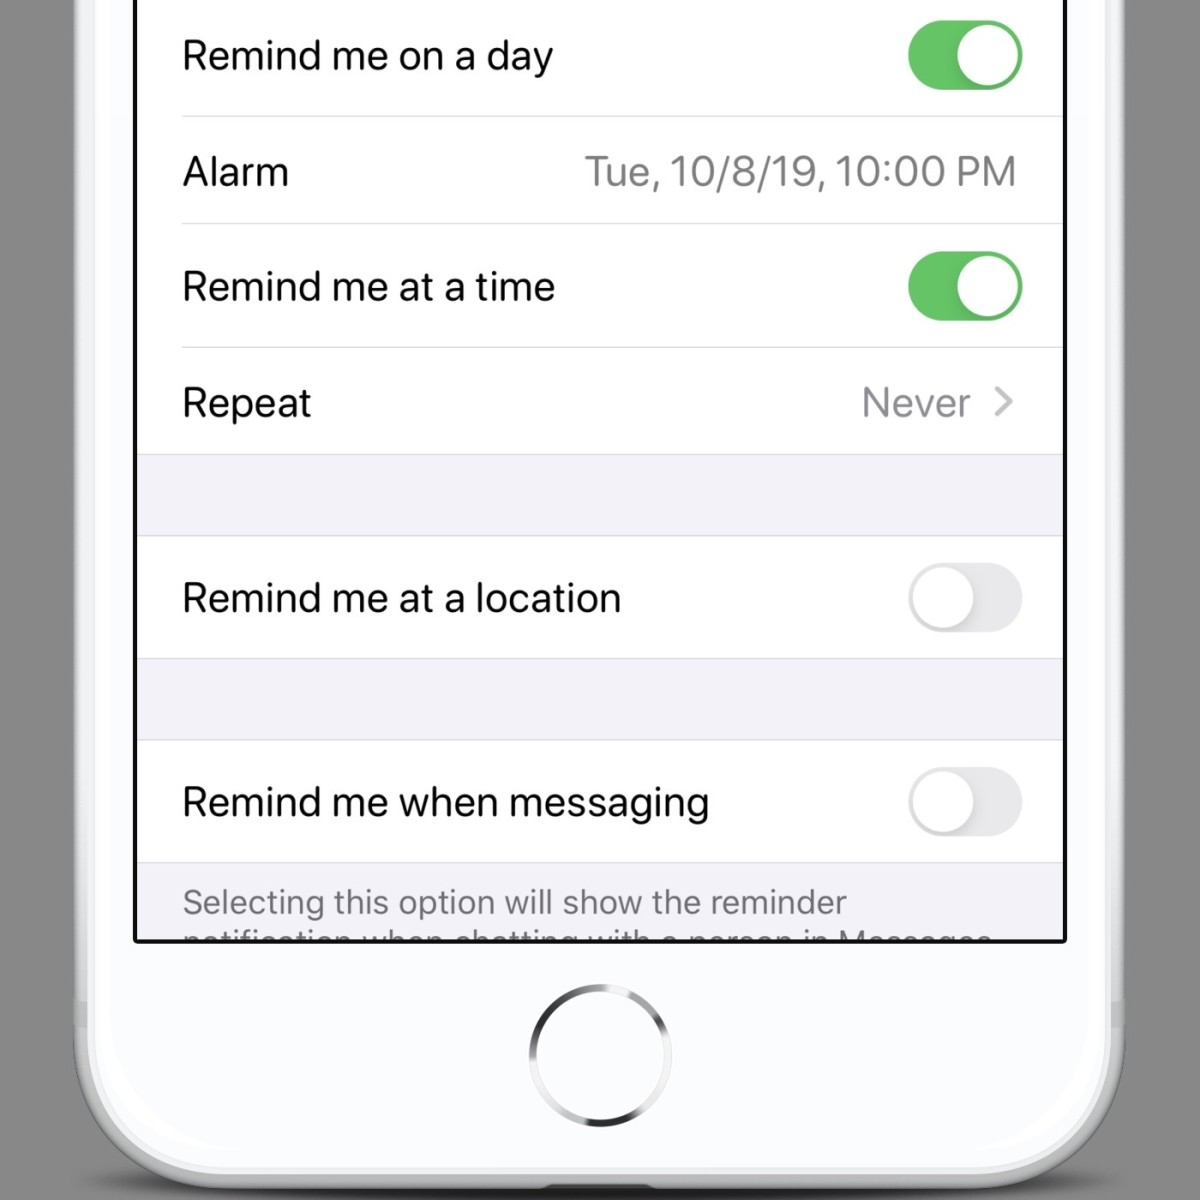 There are multiple levels of reminder options on iOS and MacOS